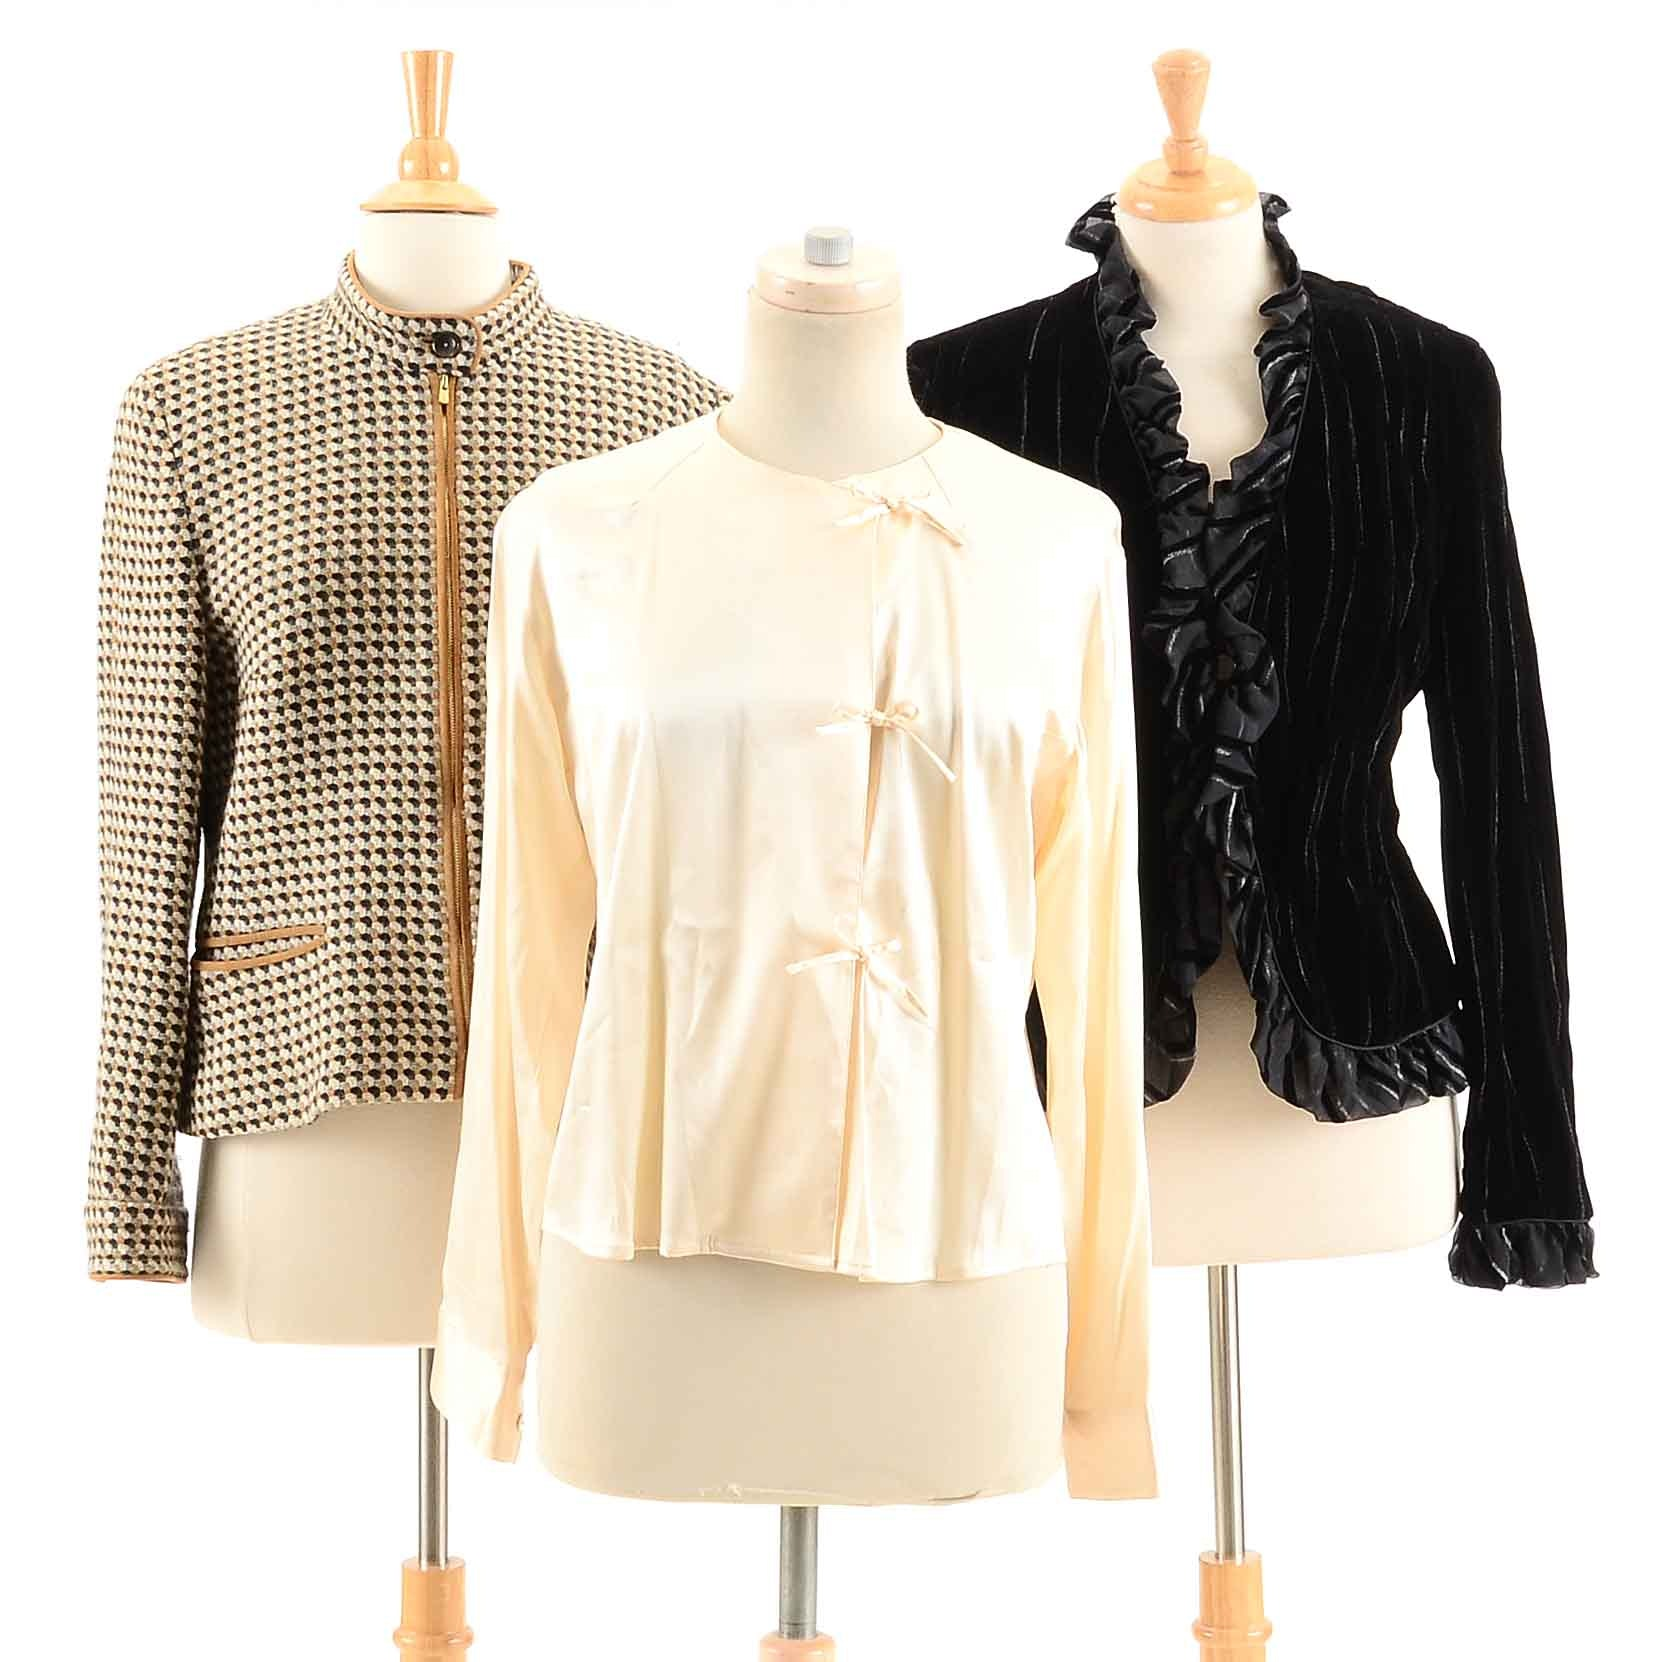 Women's Féraud Jackets and Silk Blouse